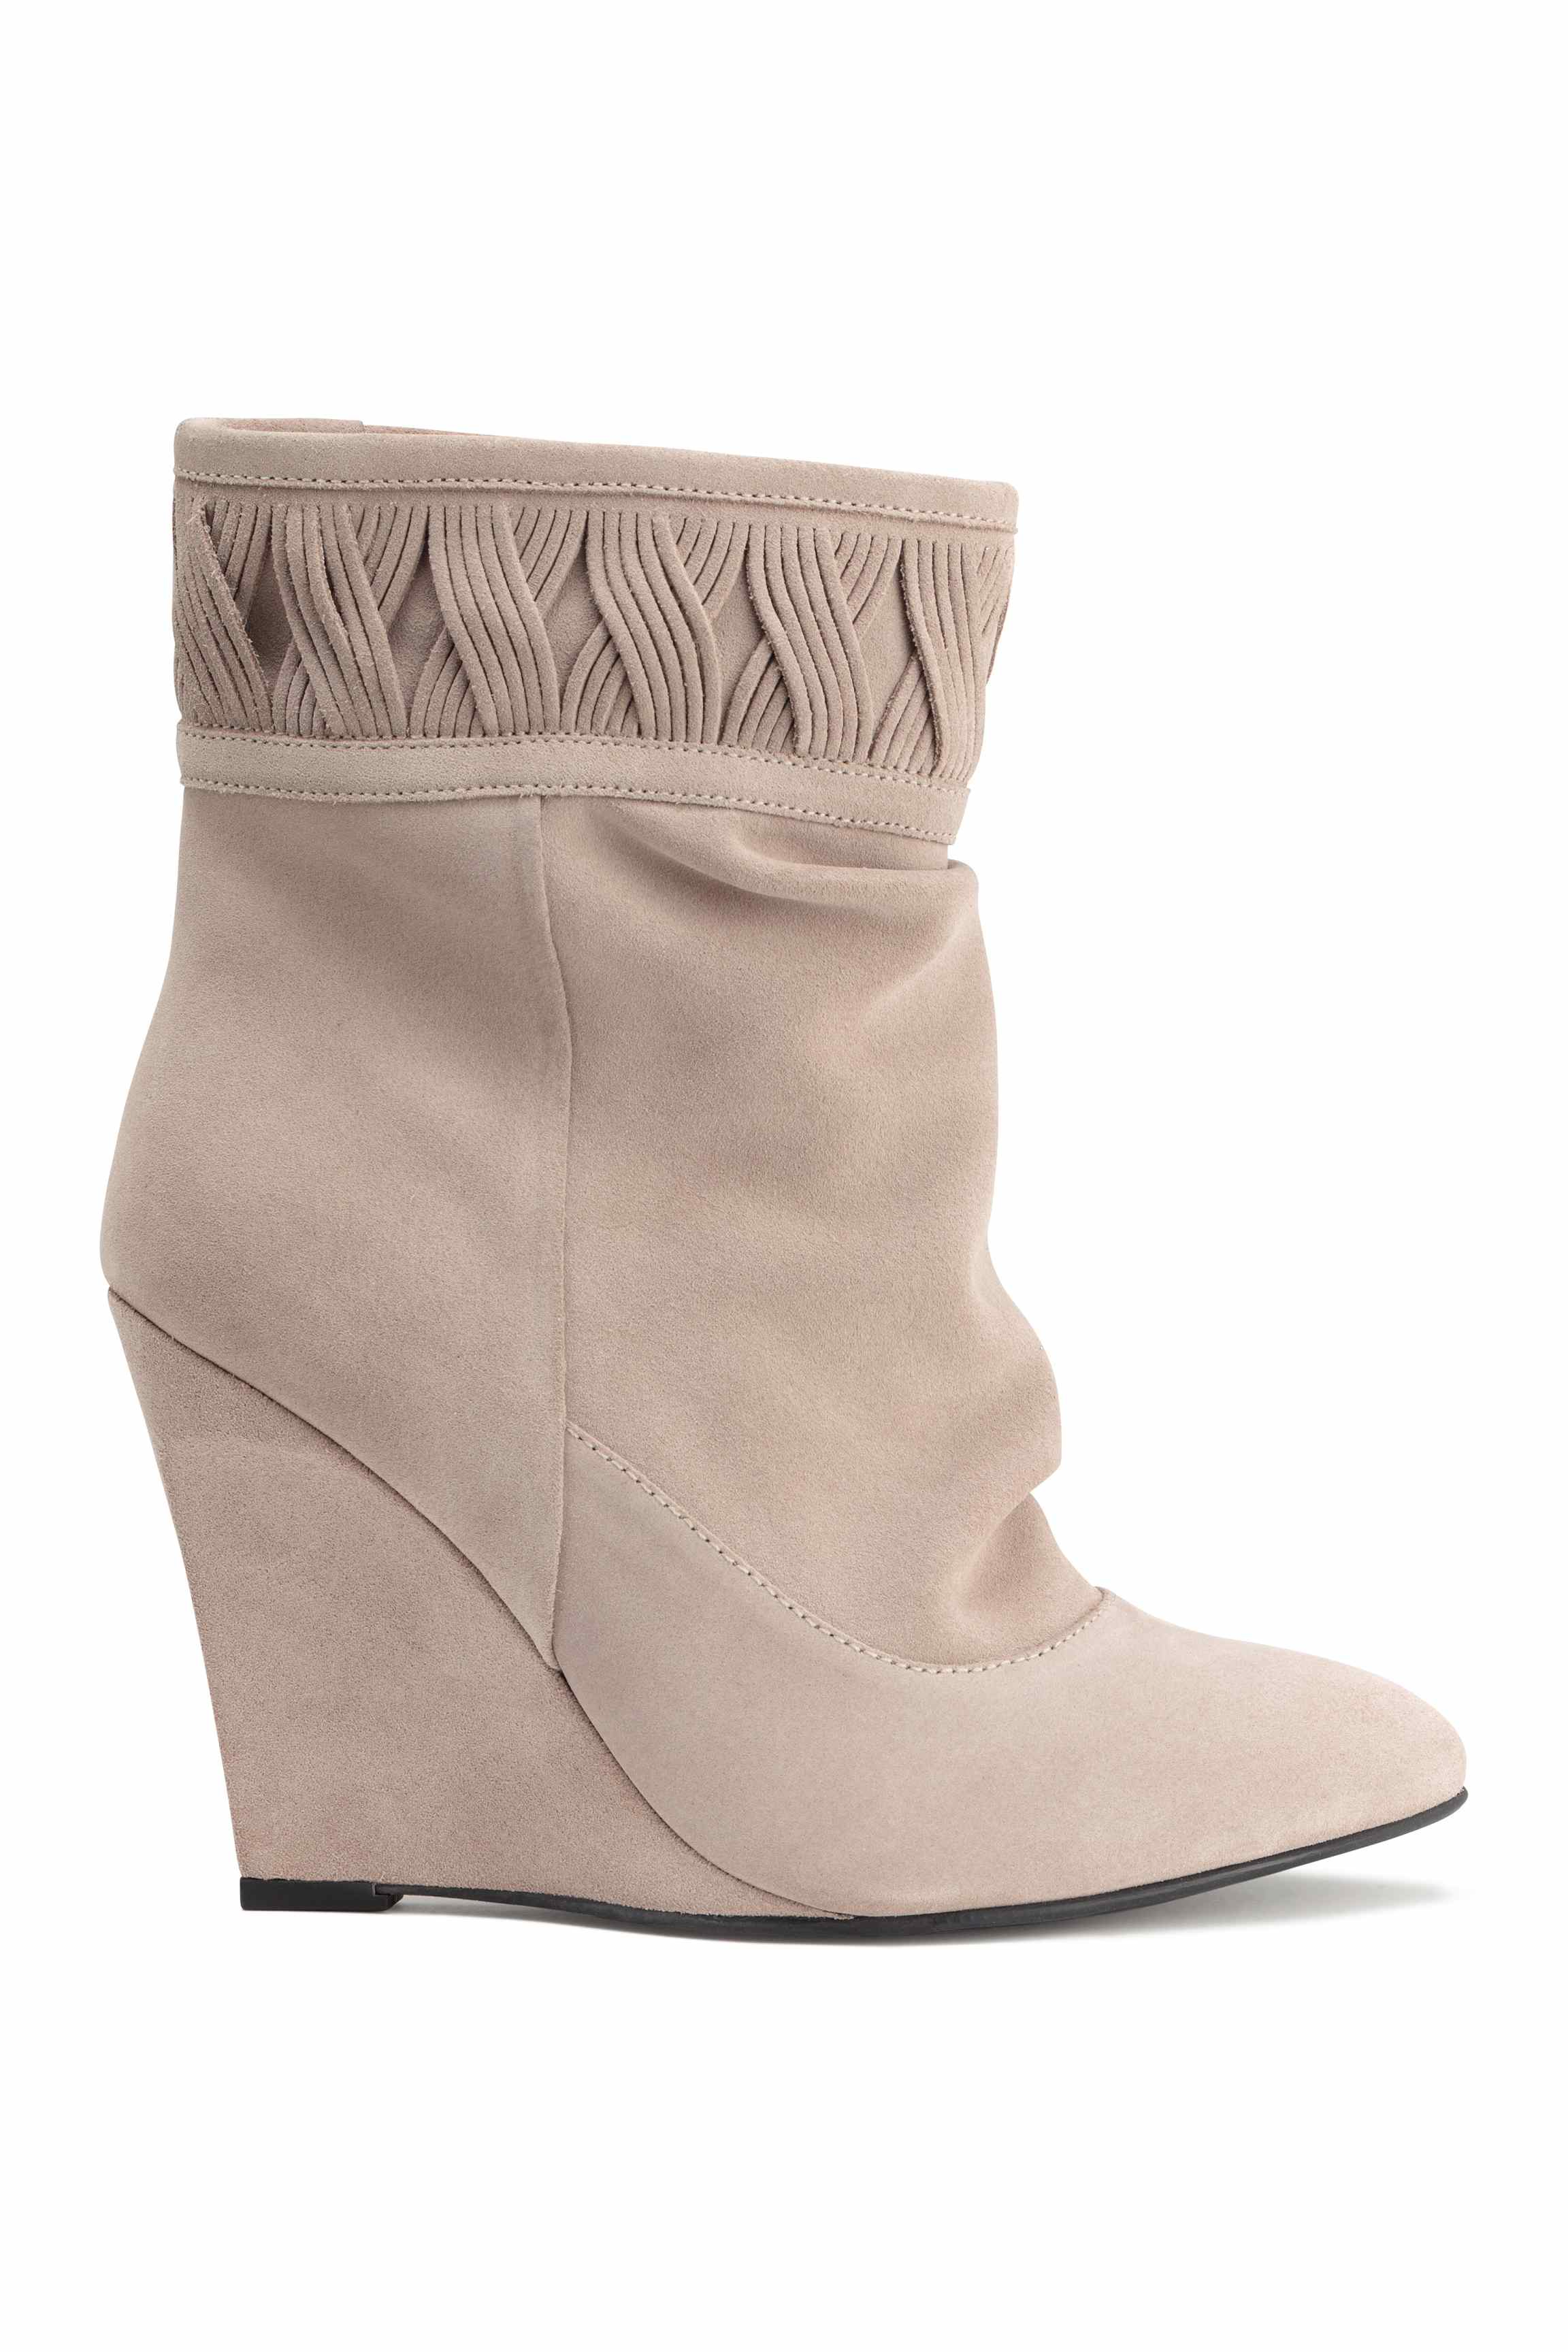 h m suede wedge heel boots lyst